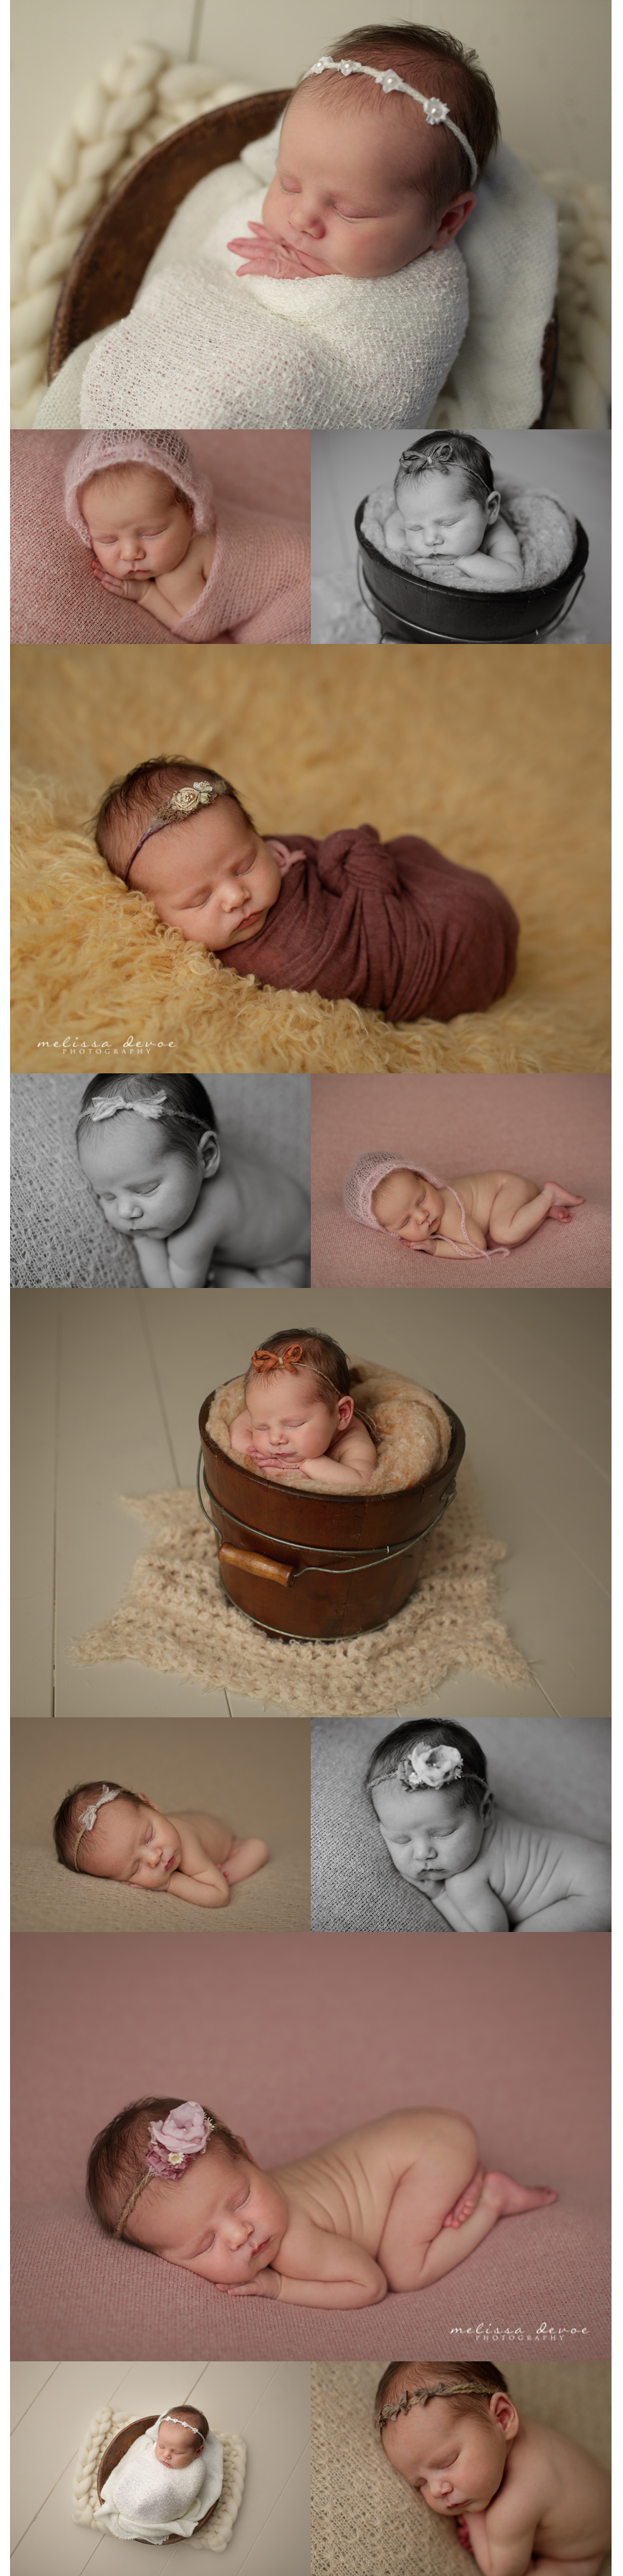 Melissa DeVoe Photography Raleigh Newborn Baby Photographer 3